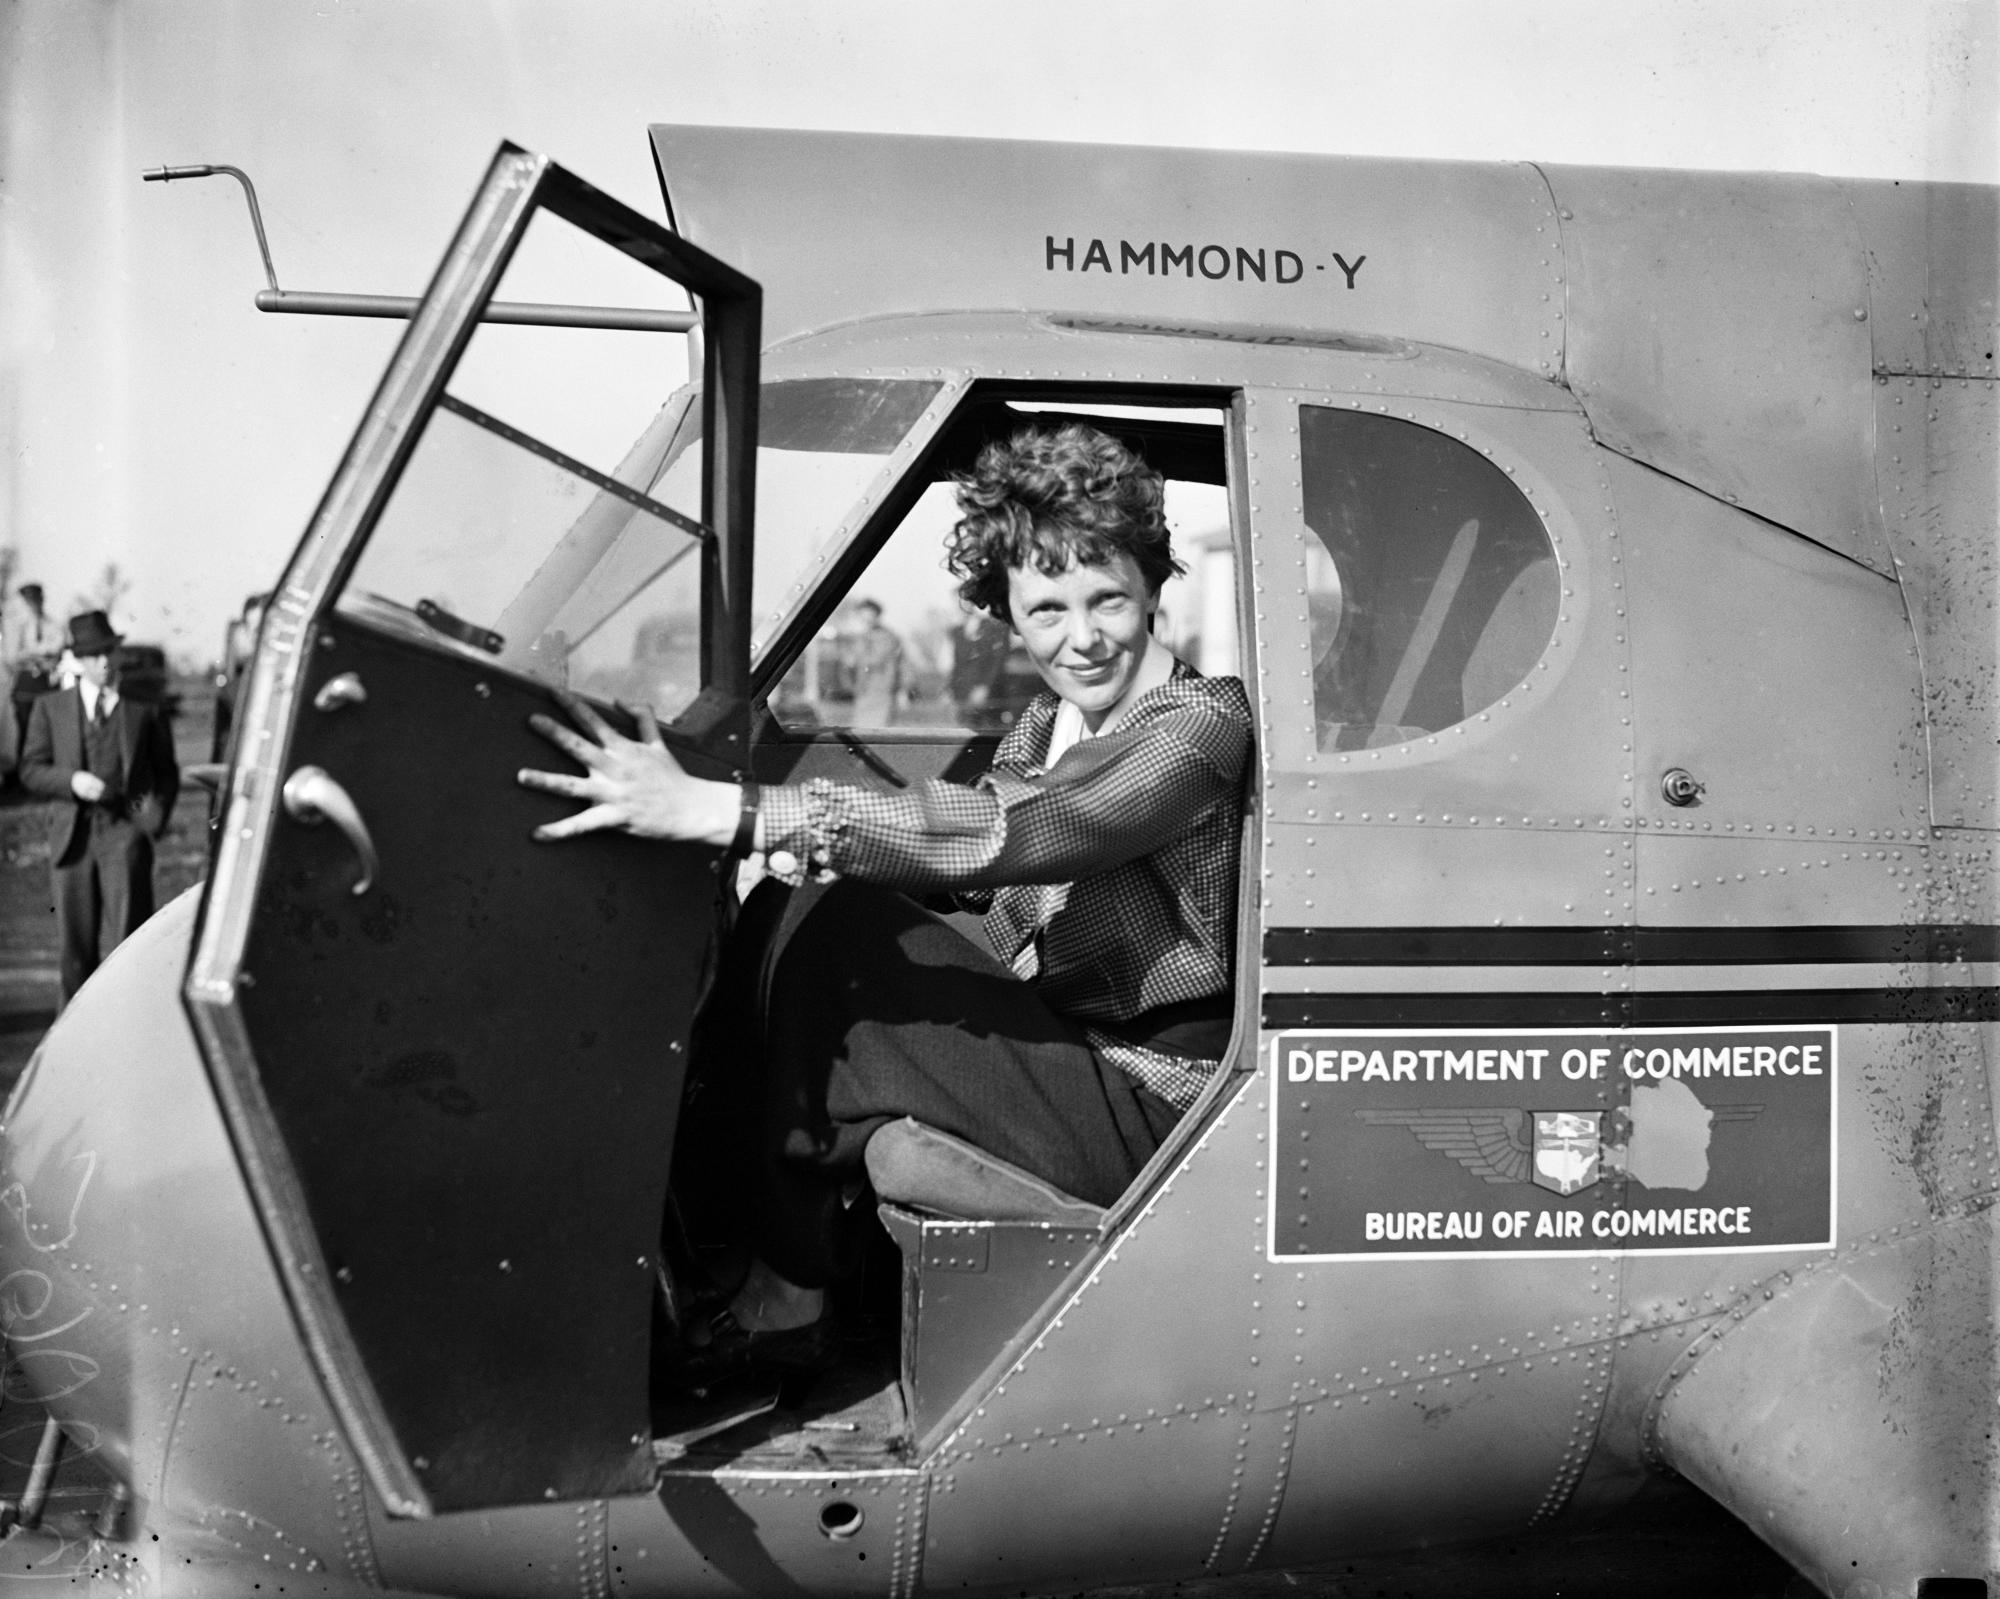 a biography of amelia earhart the first woman to cross the atlantic by plane Aviation legend amelia earhart is most famous for the first woman to fly across the atlantic in a found of amelia earhart, fred noonan, or their plane.